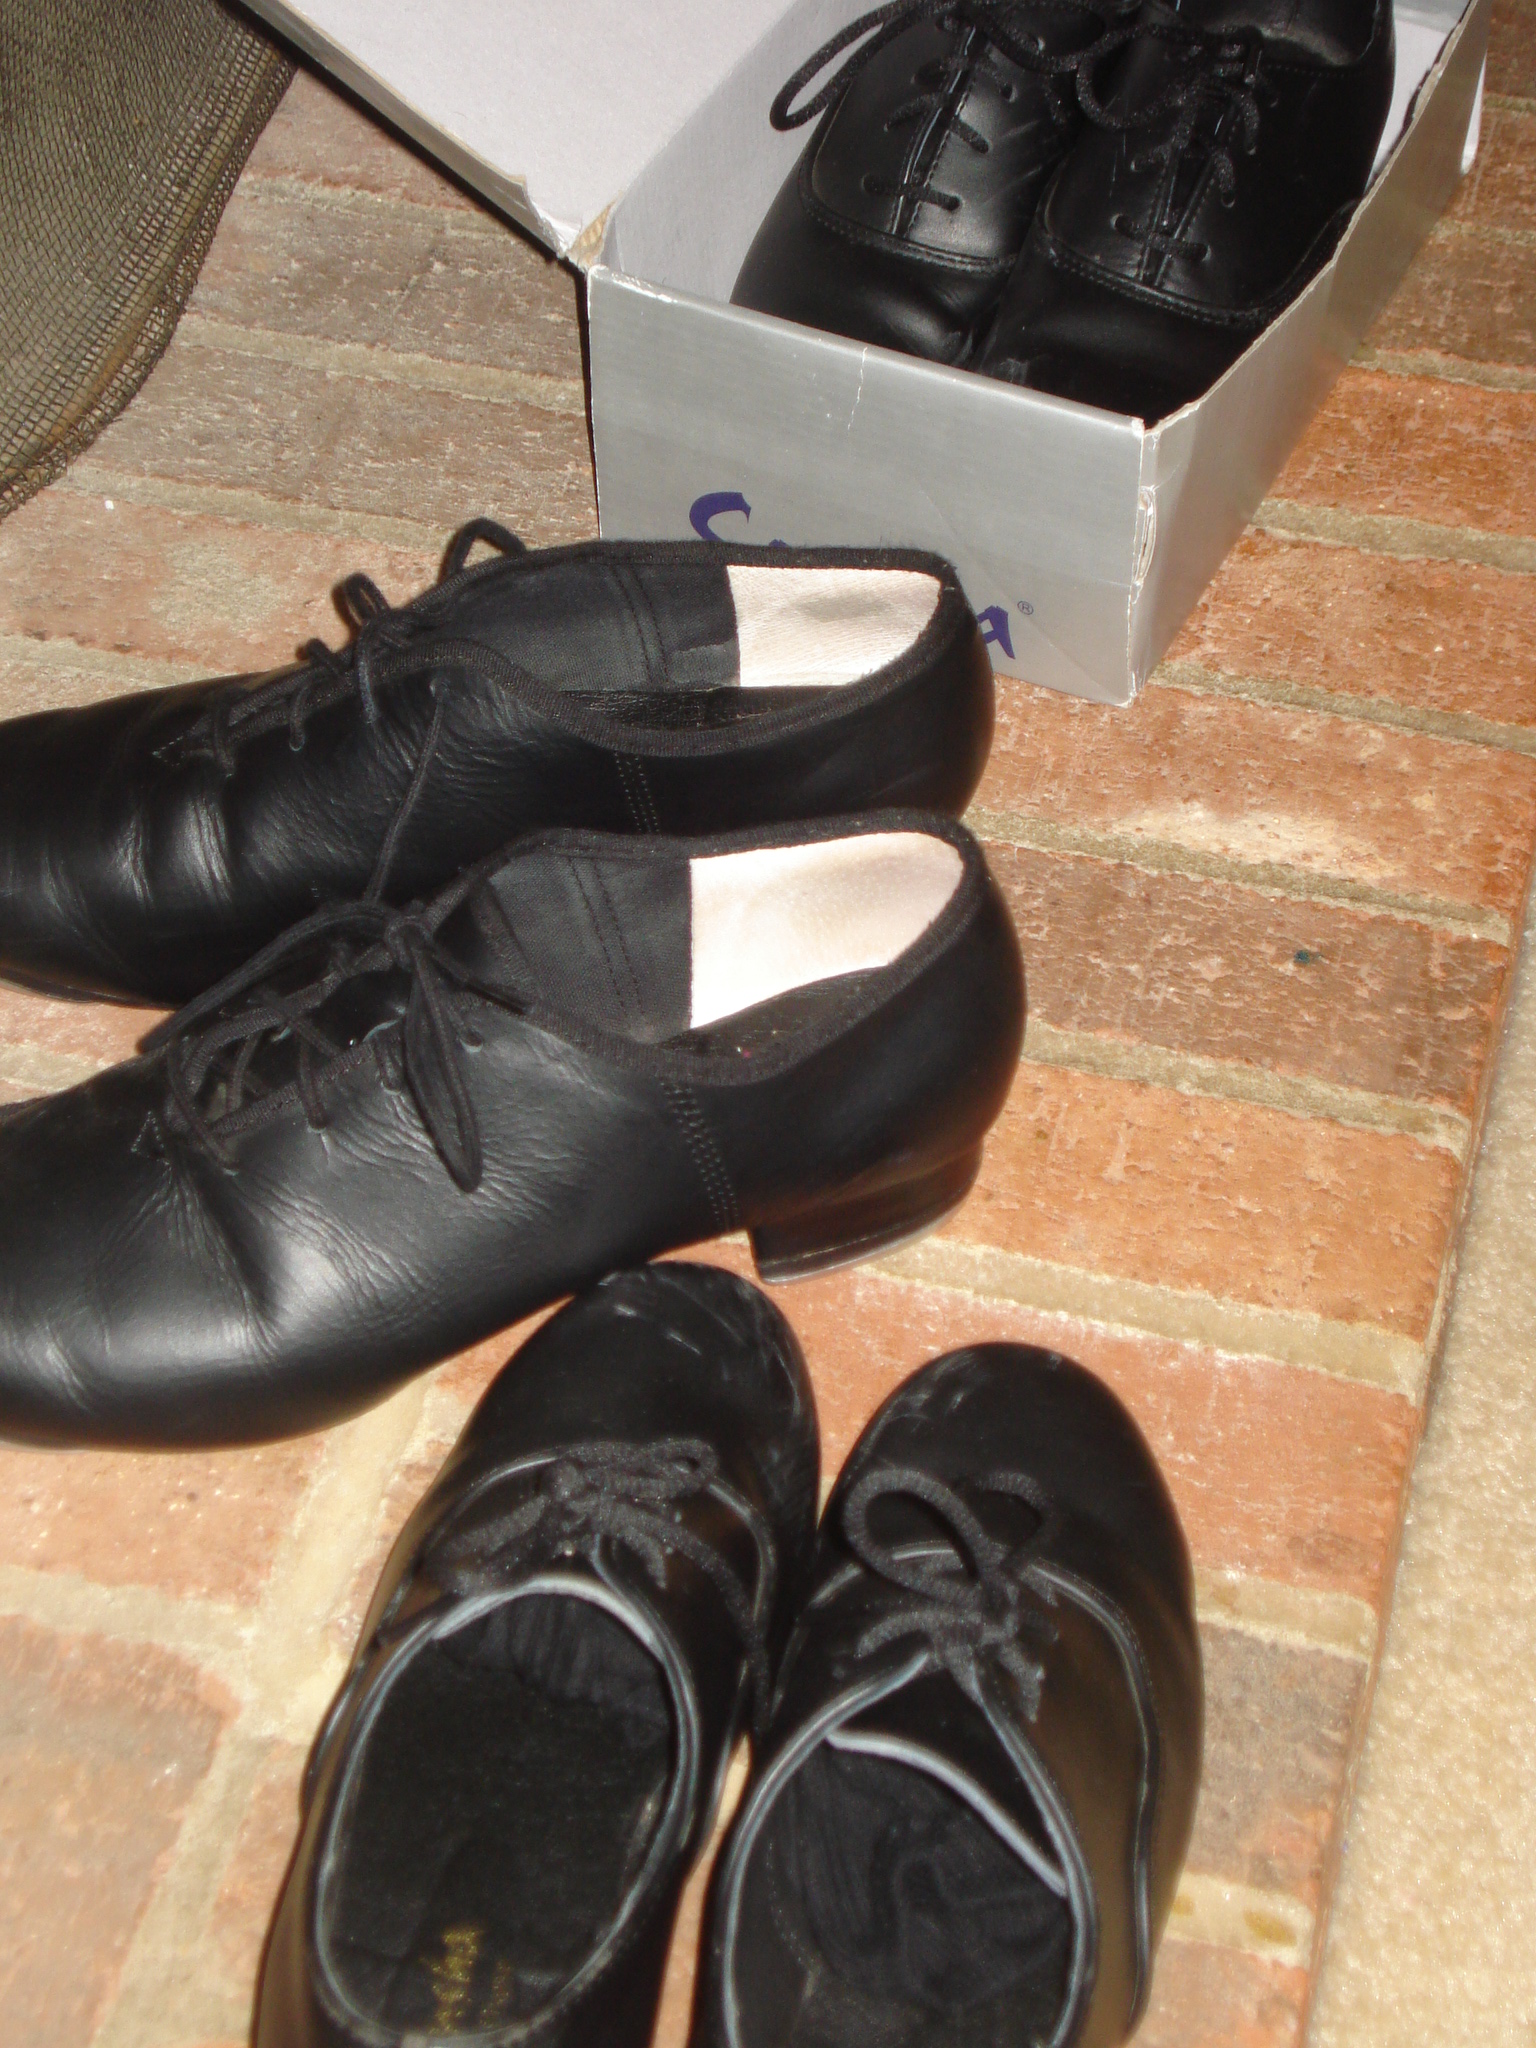 Tap Shoes on the Hearth